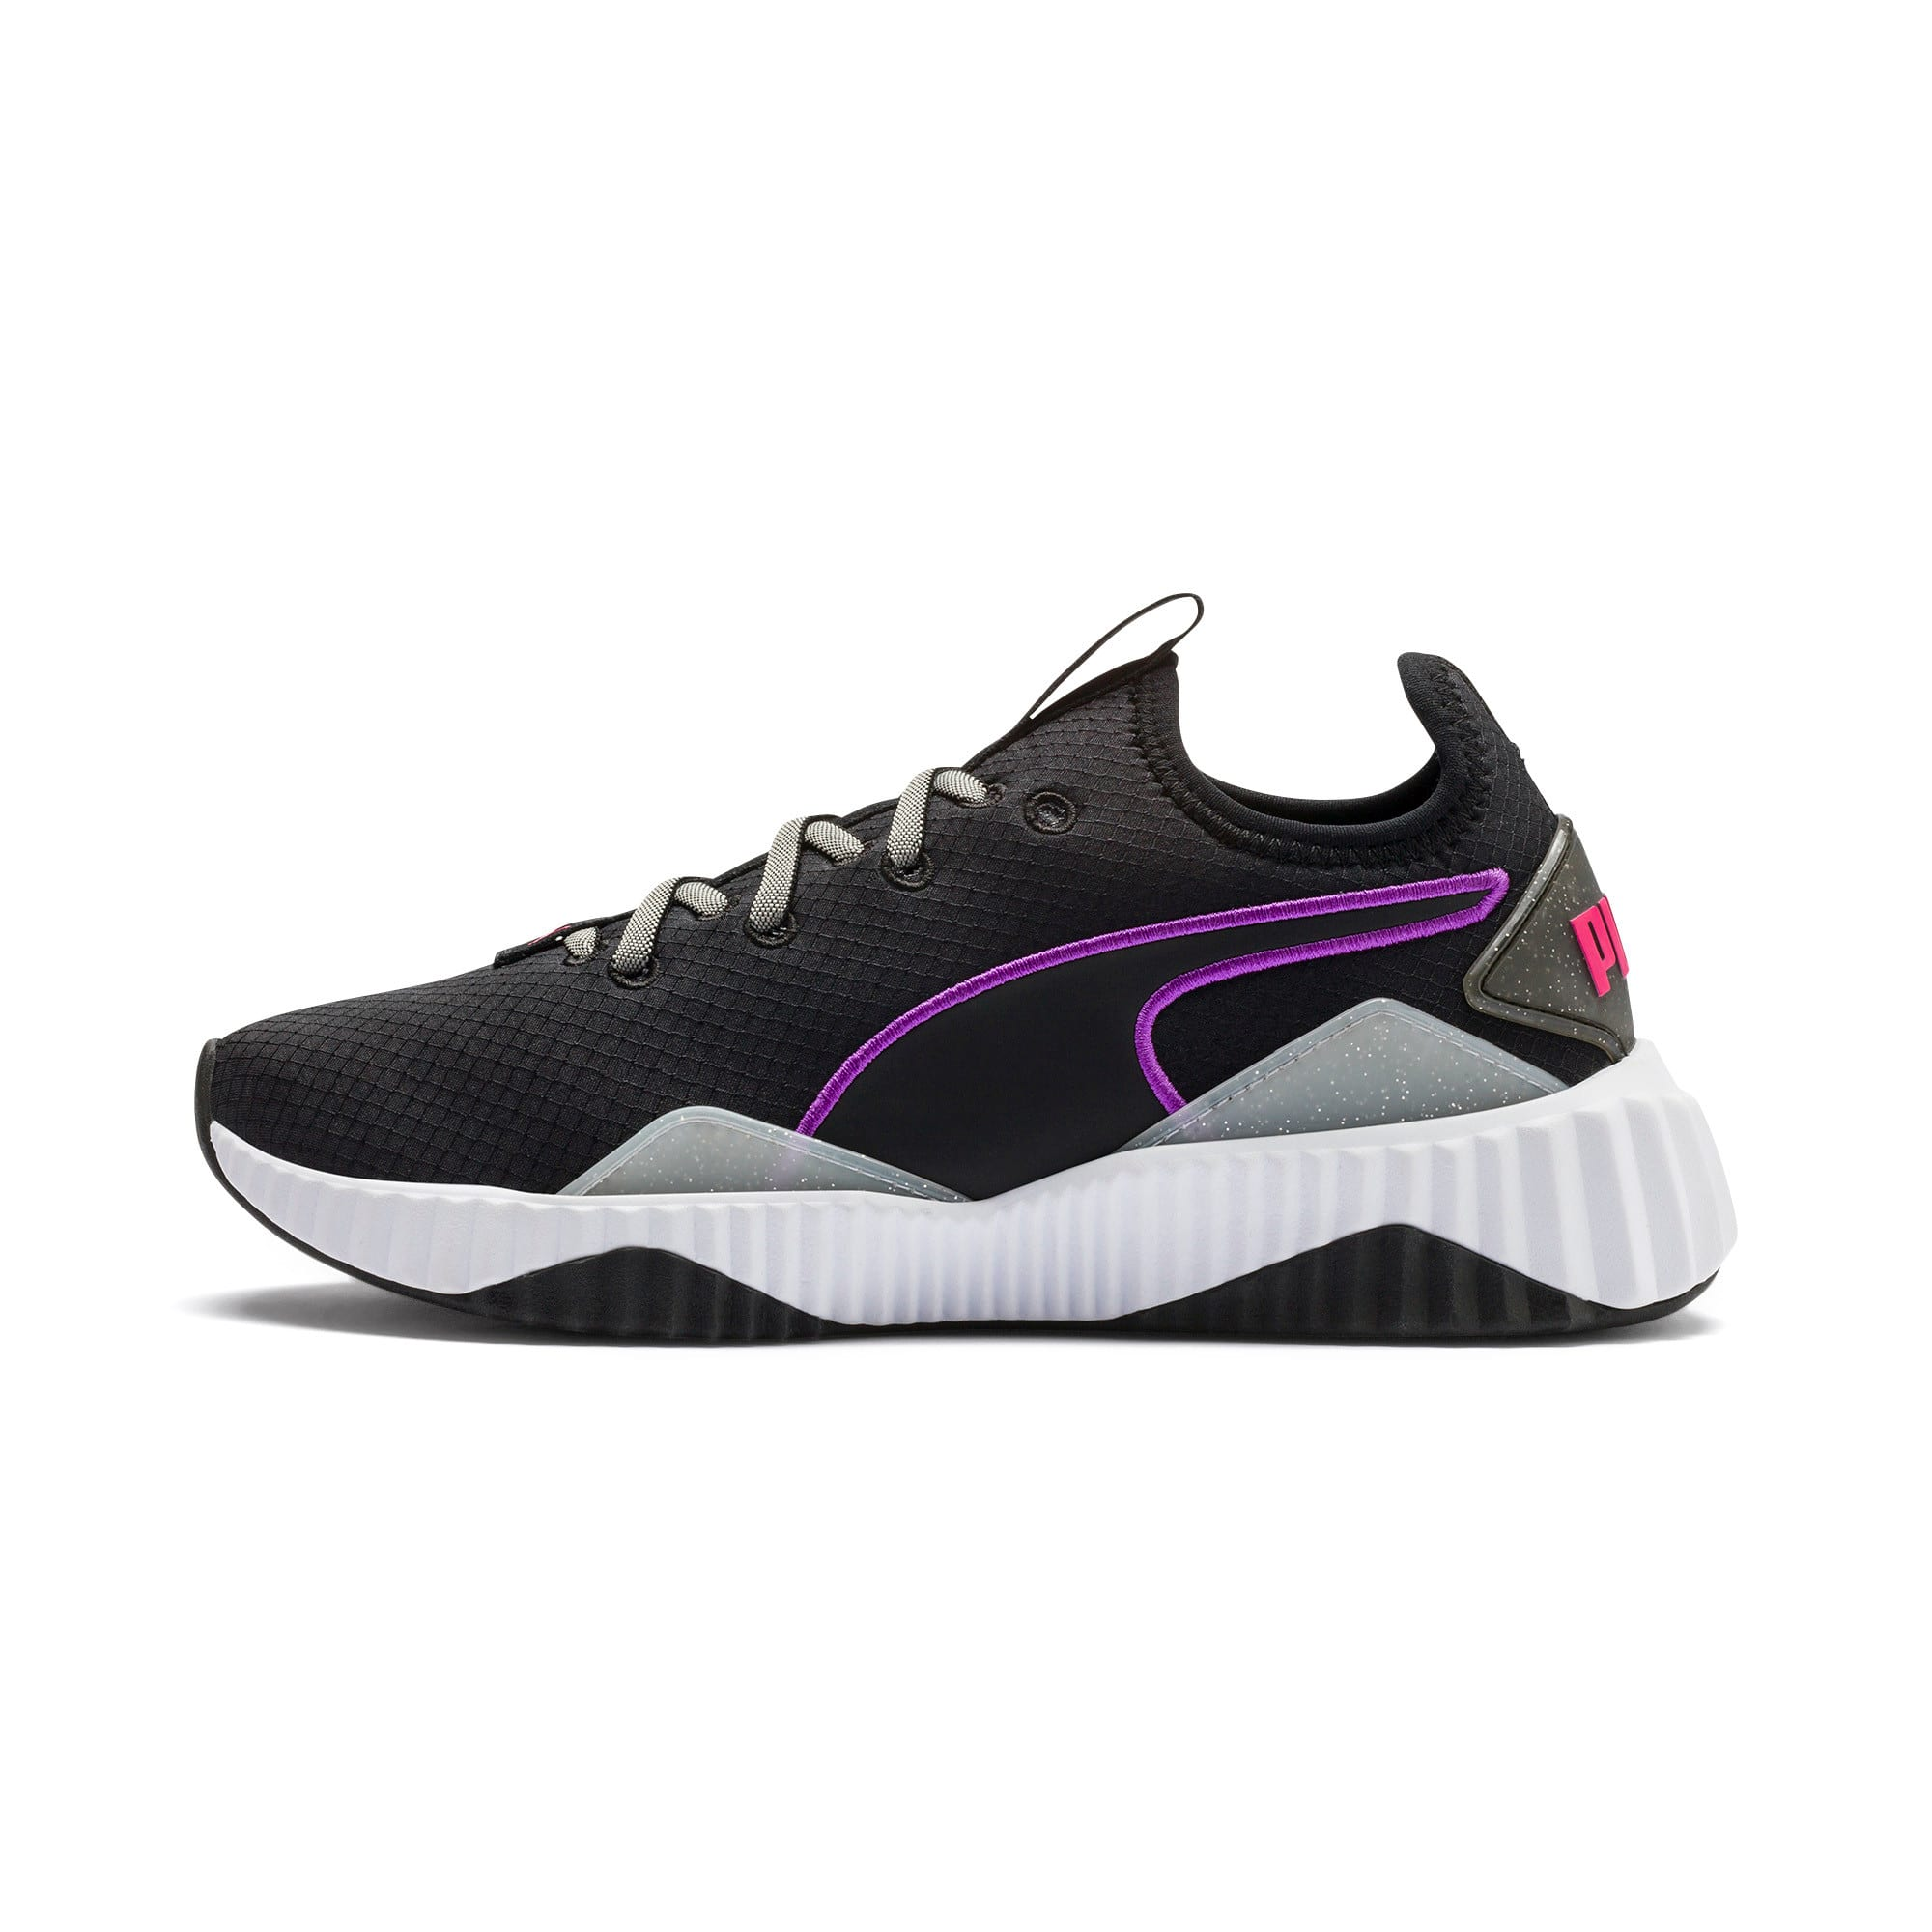 Thumbnail 1 of Defy Sheen Women's Training Shoes, Puma Black-Puma White, medium